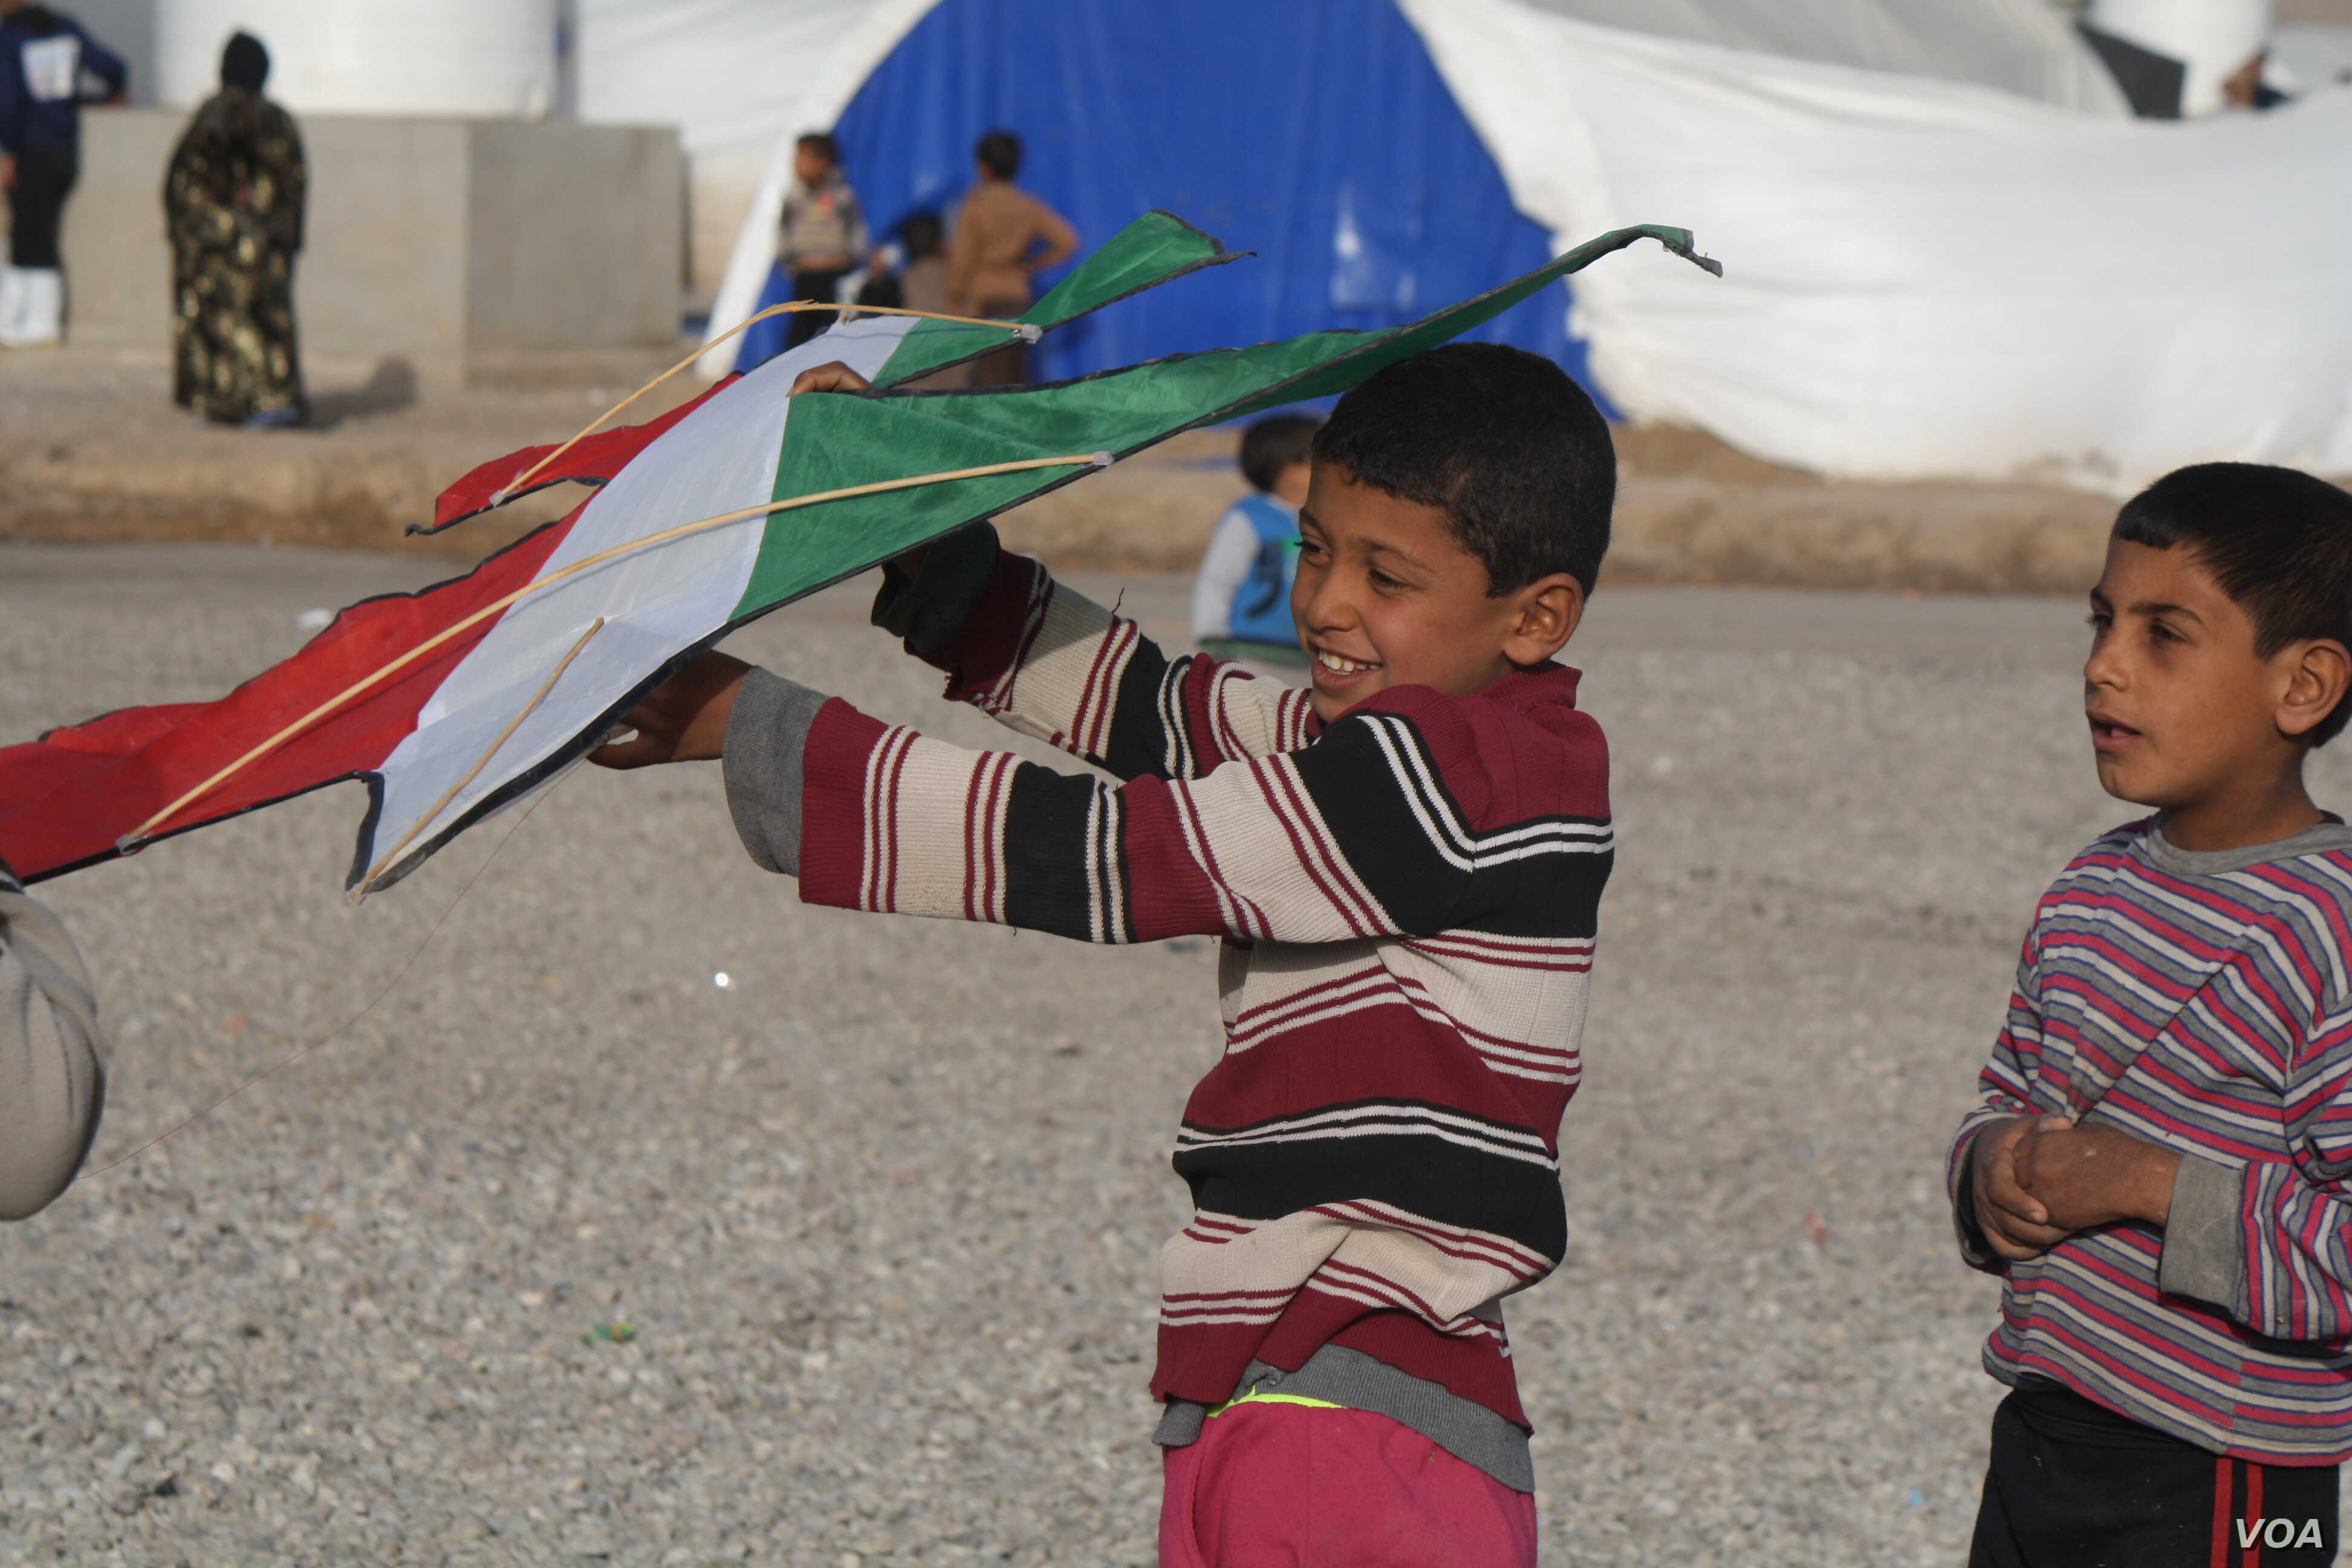 Children in camp pass time playing with kites given to them by Kurdish peshmerga soldiers in Hassan Shams, Kurdish Iraq, Jan. 10, 2017. (H. Murdock/VOA)